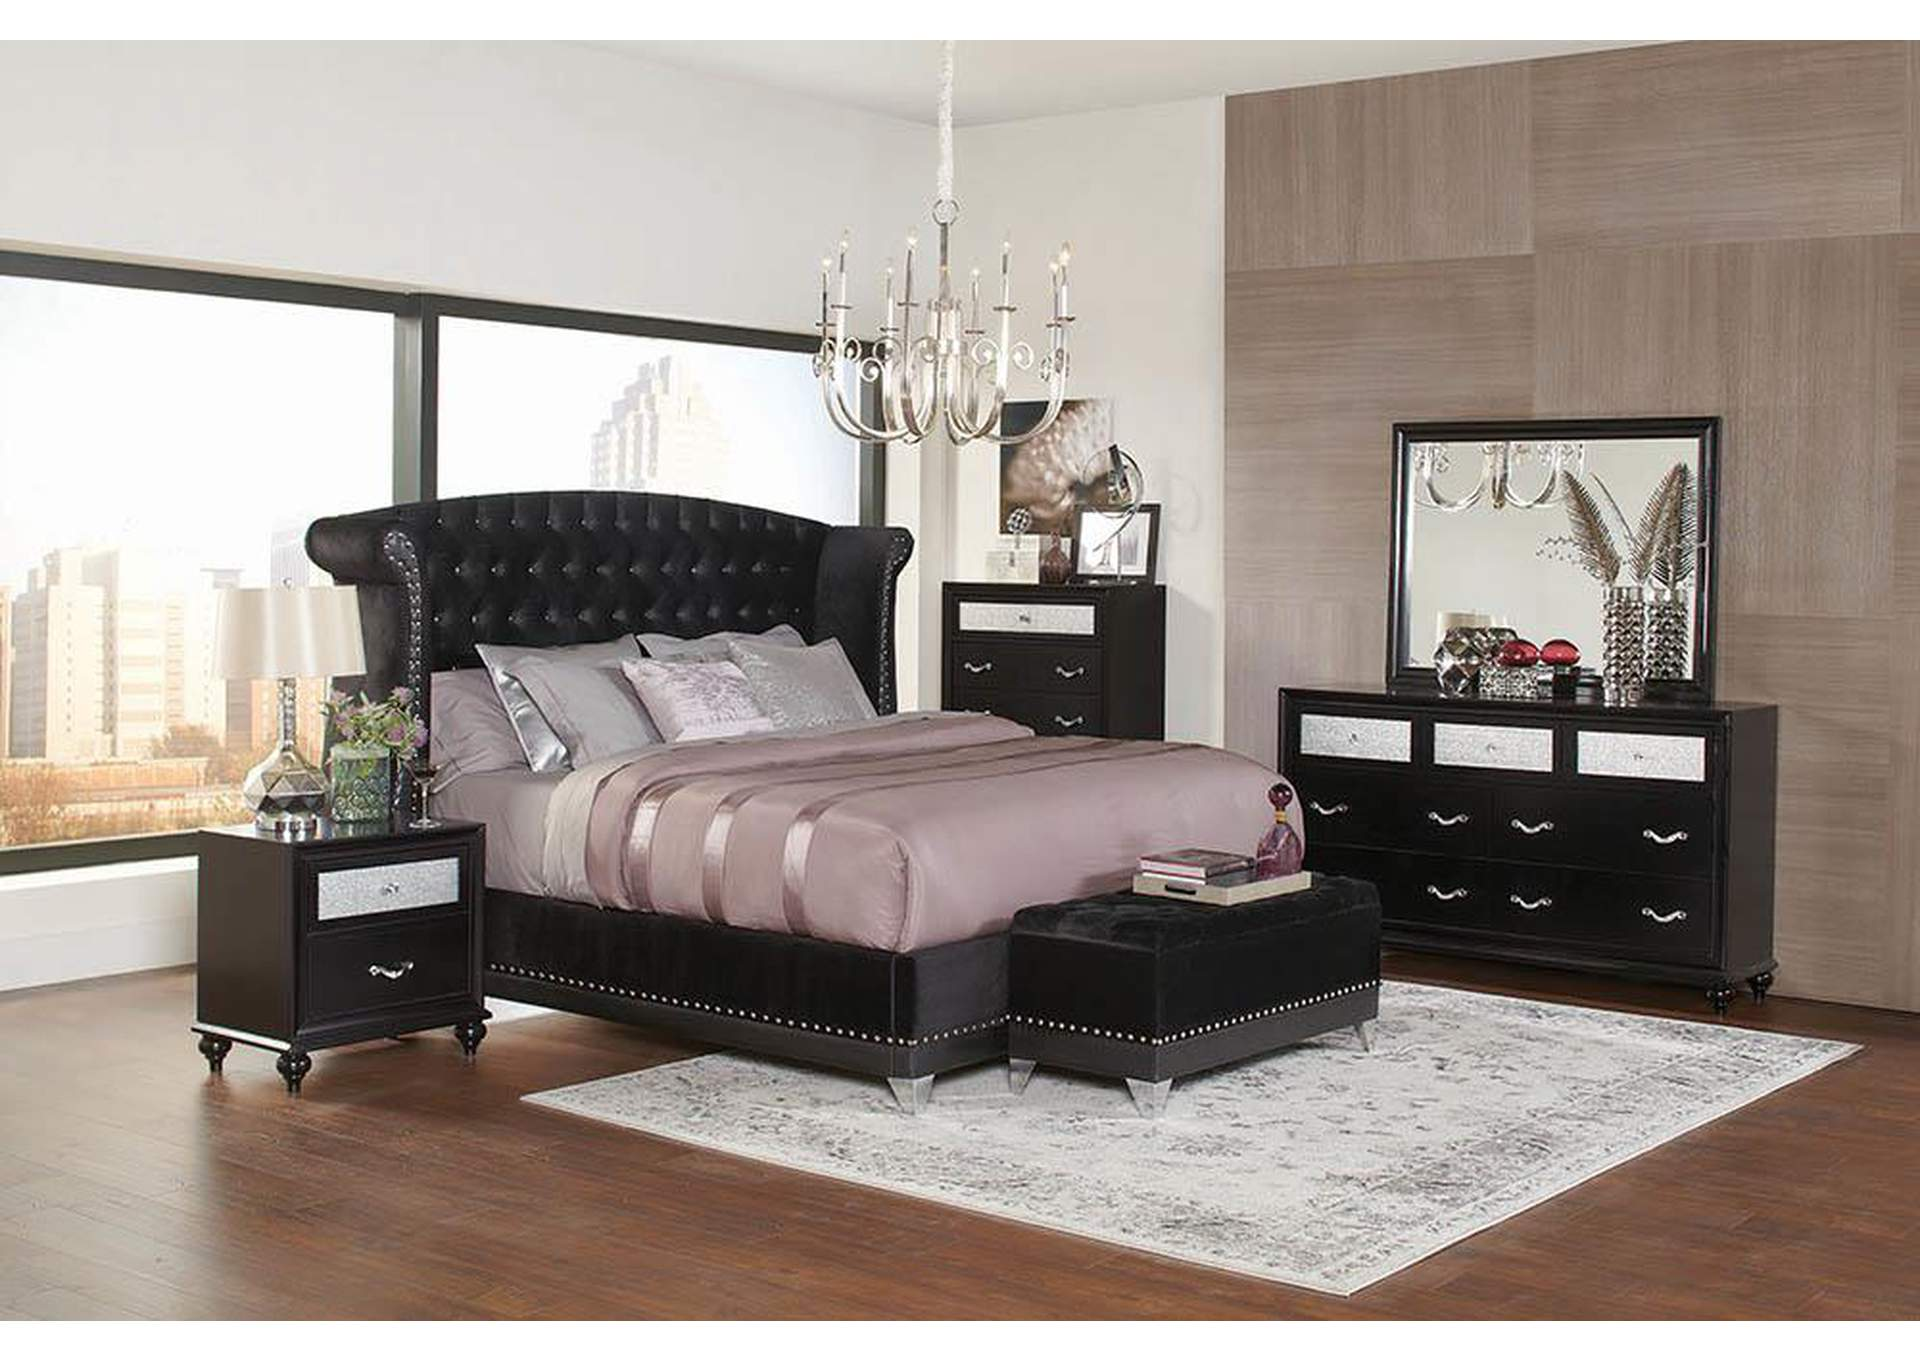 Barzini Black Upholstered Queen Bed,Coaster Furniture